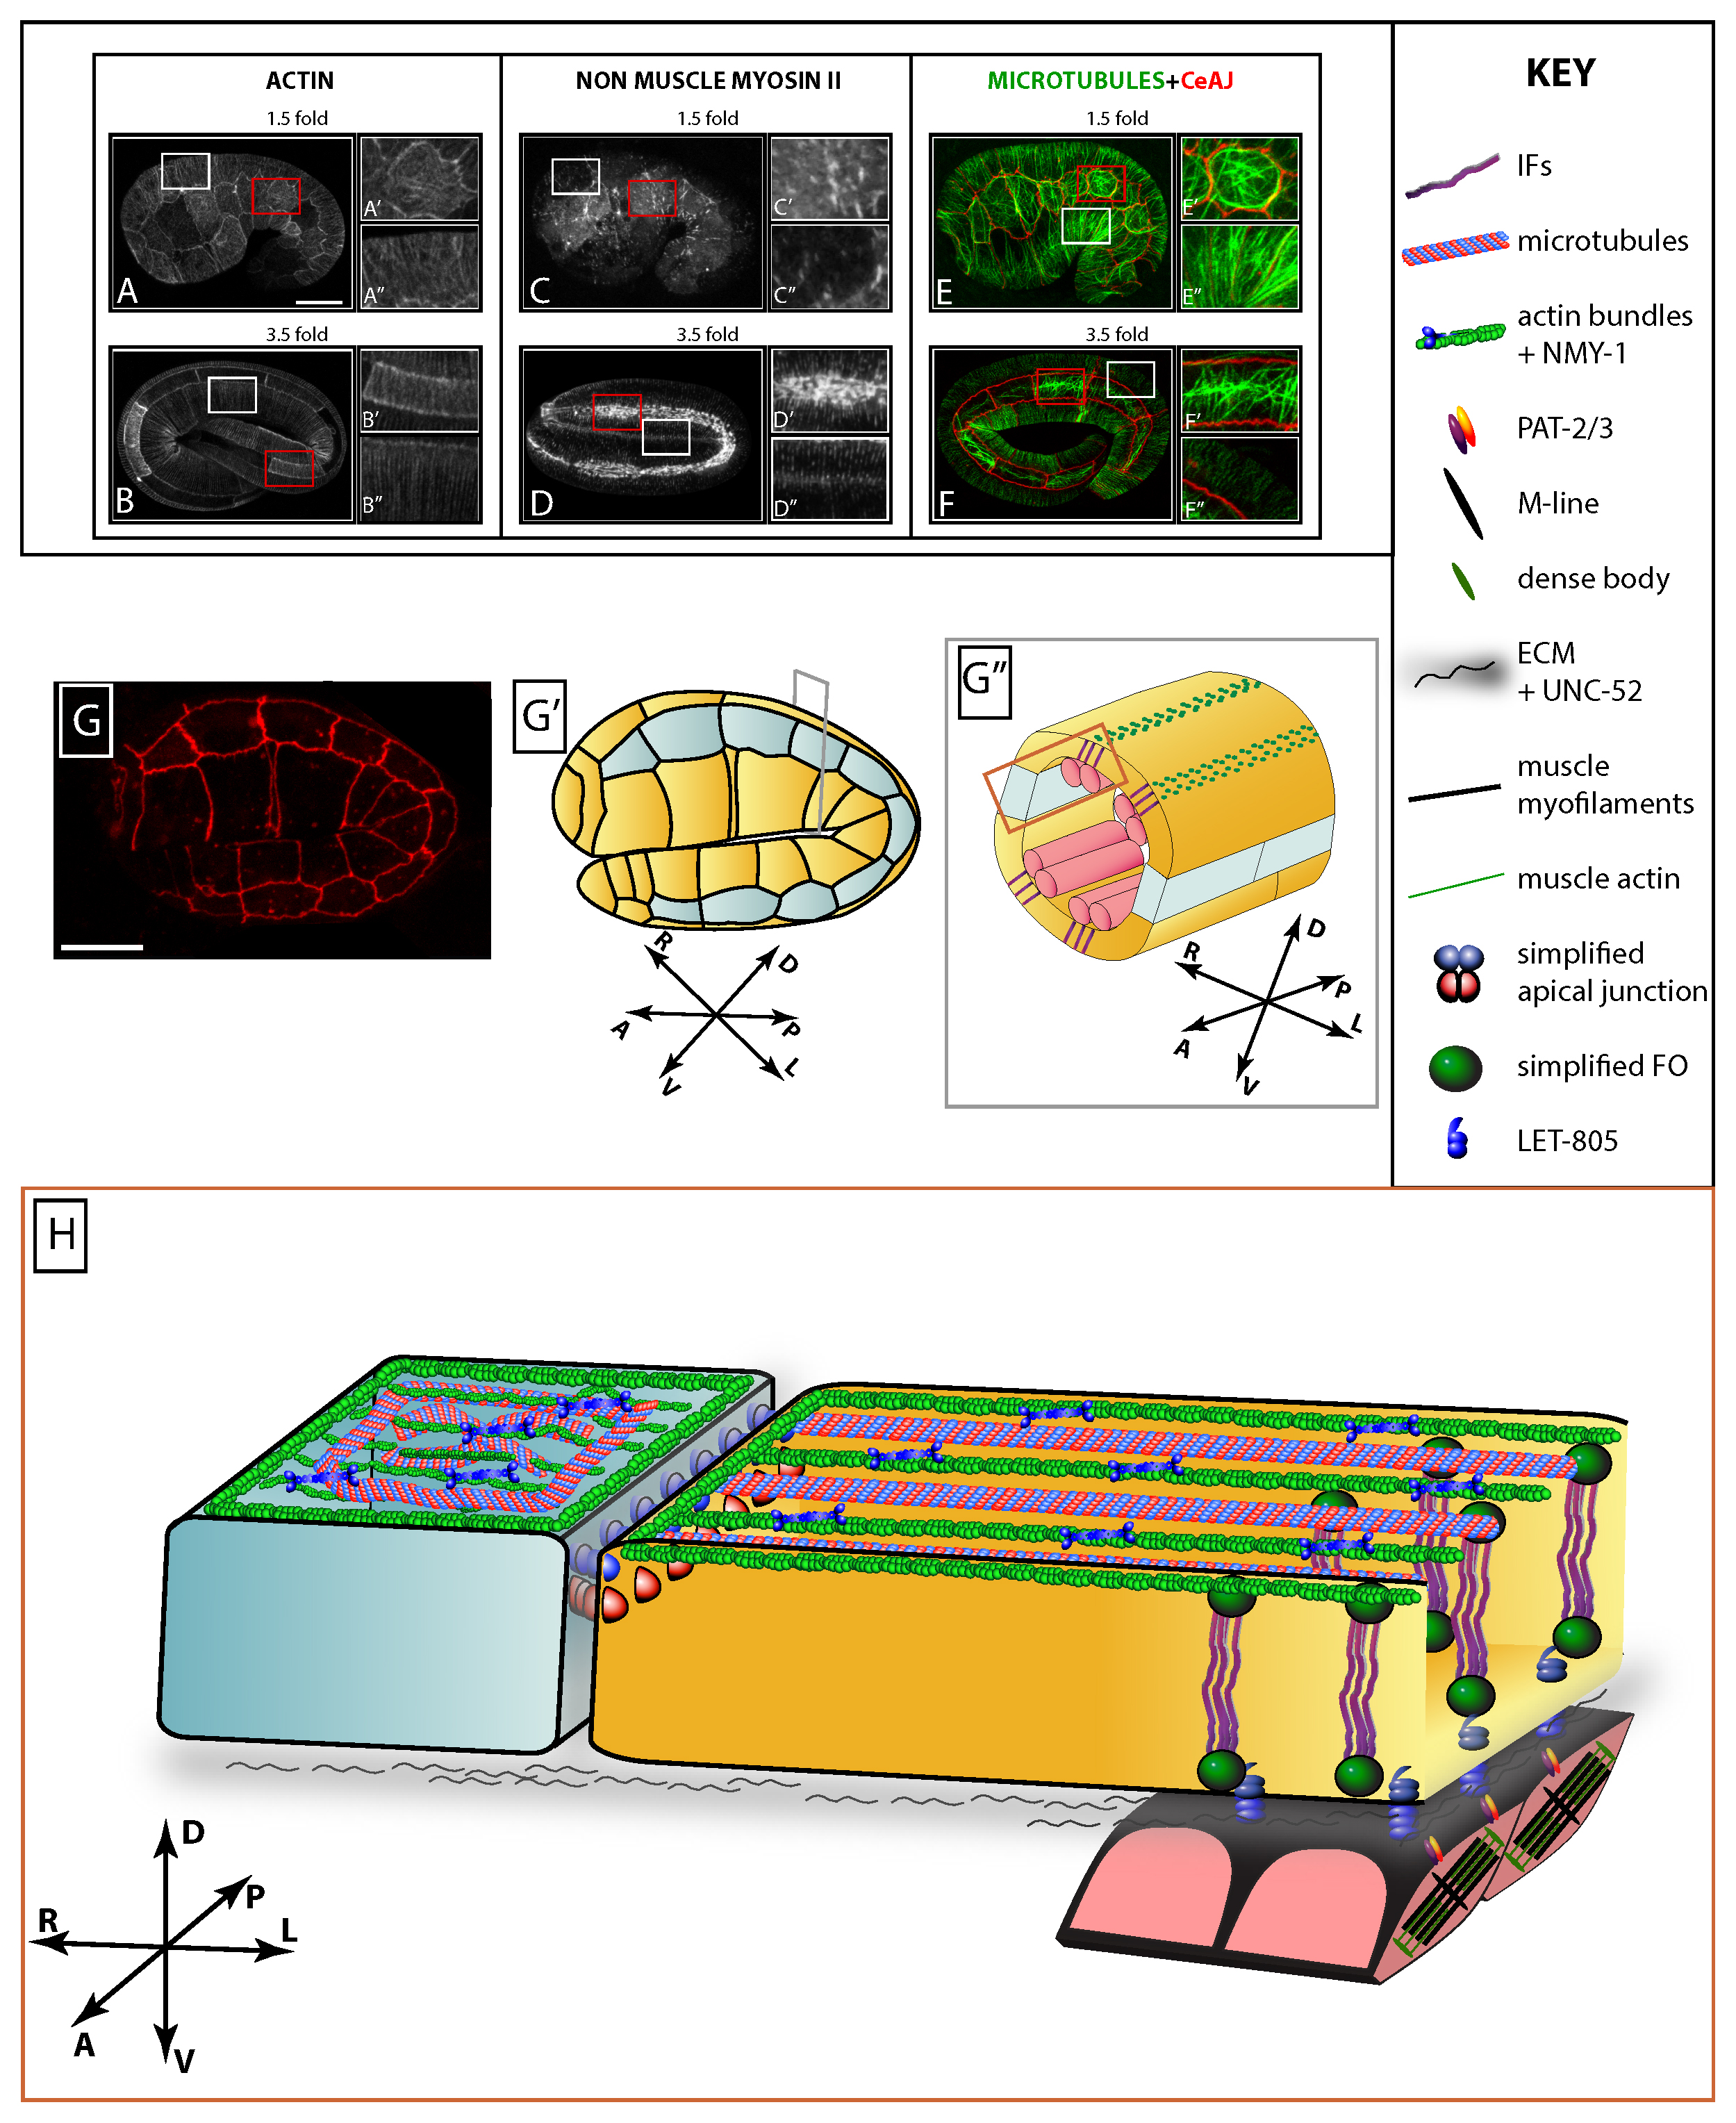 epithelial junctions cytoskeleton and polarity